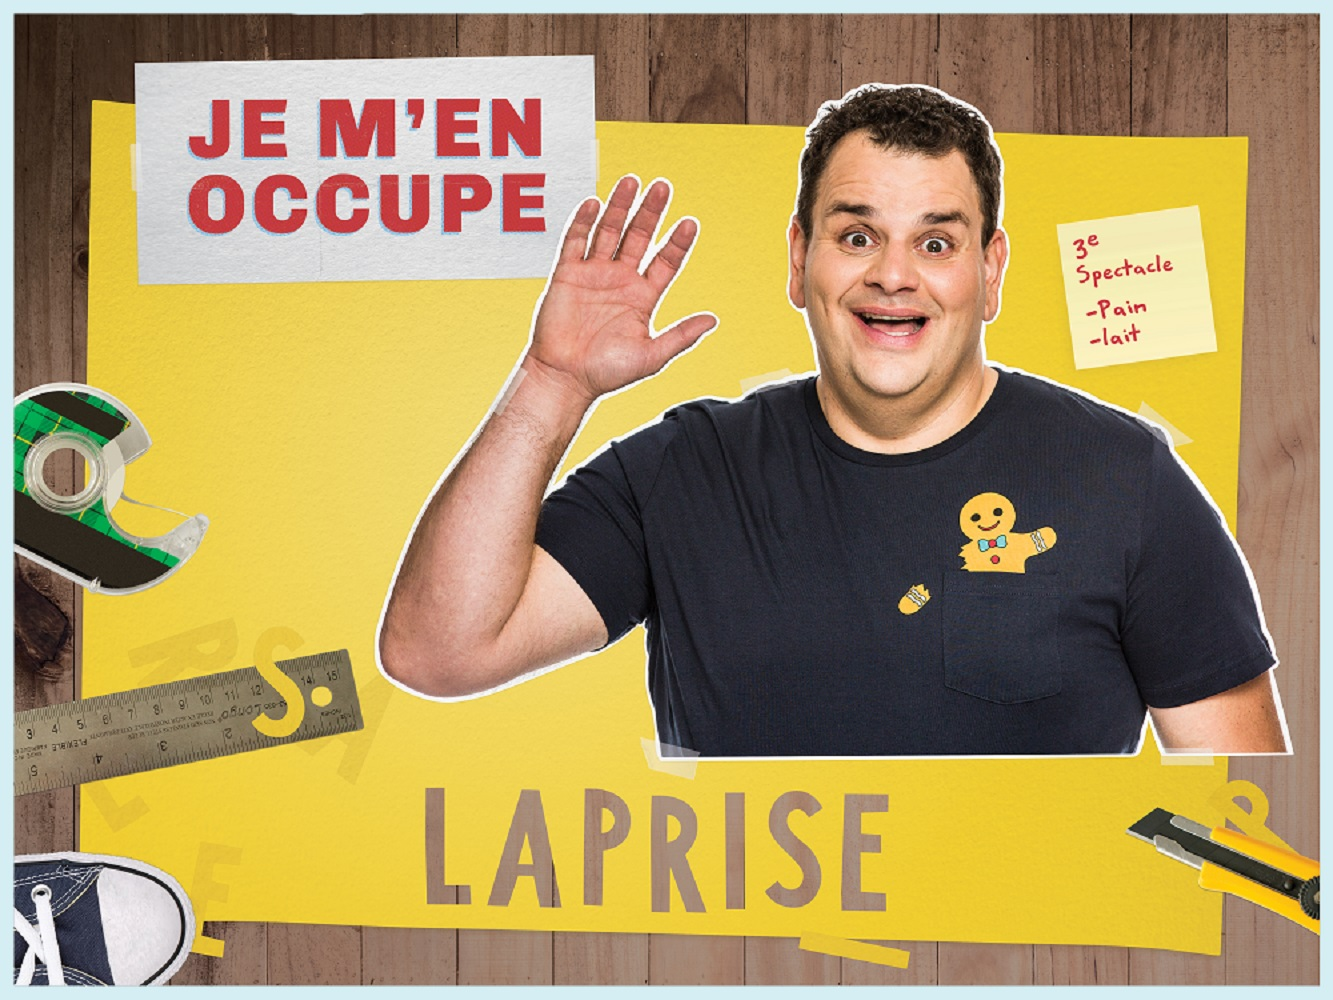 Je m'en occupe !